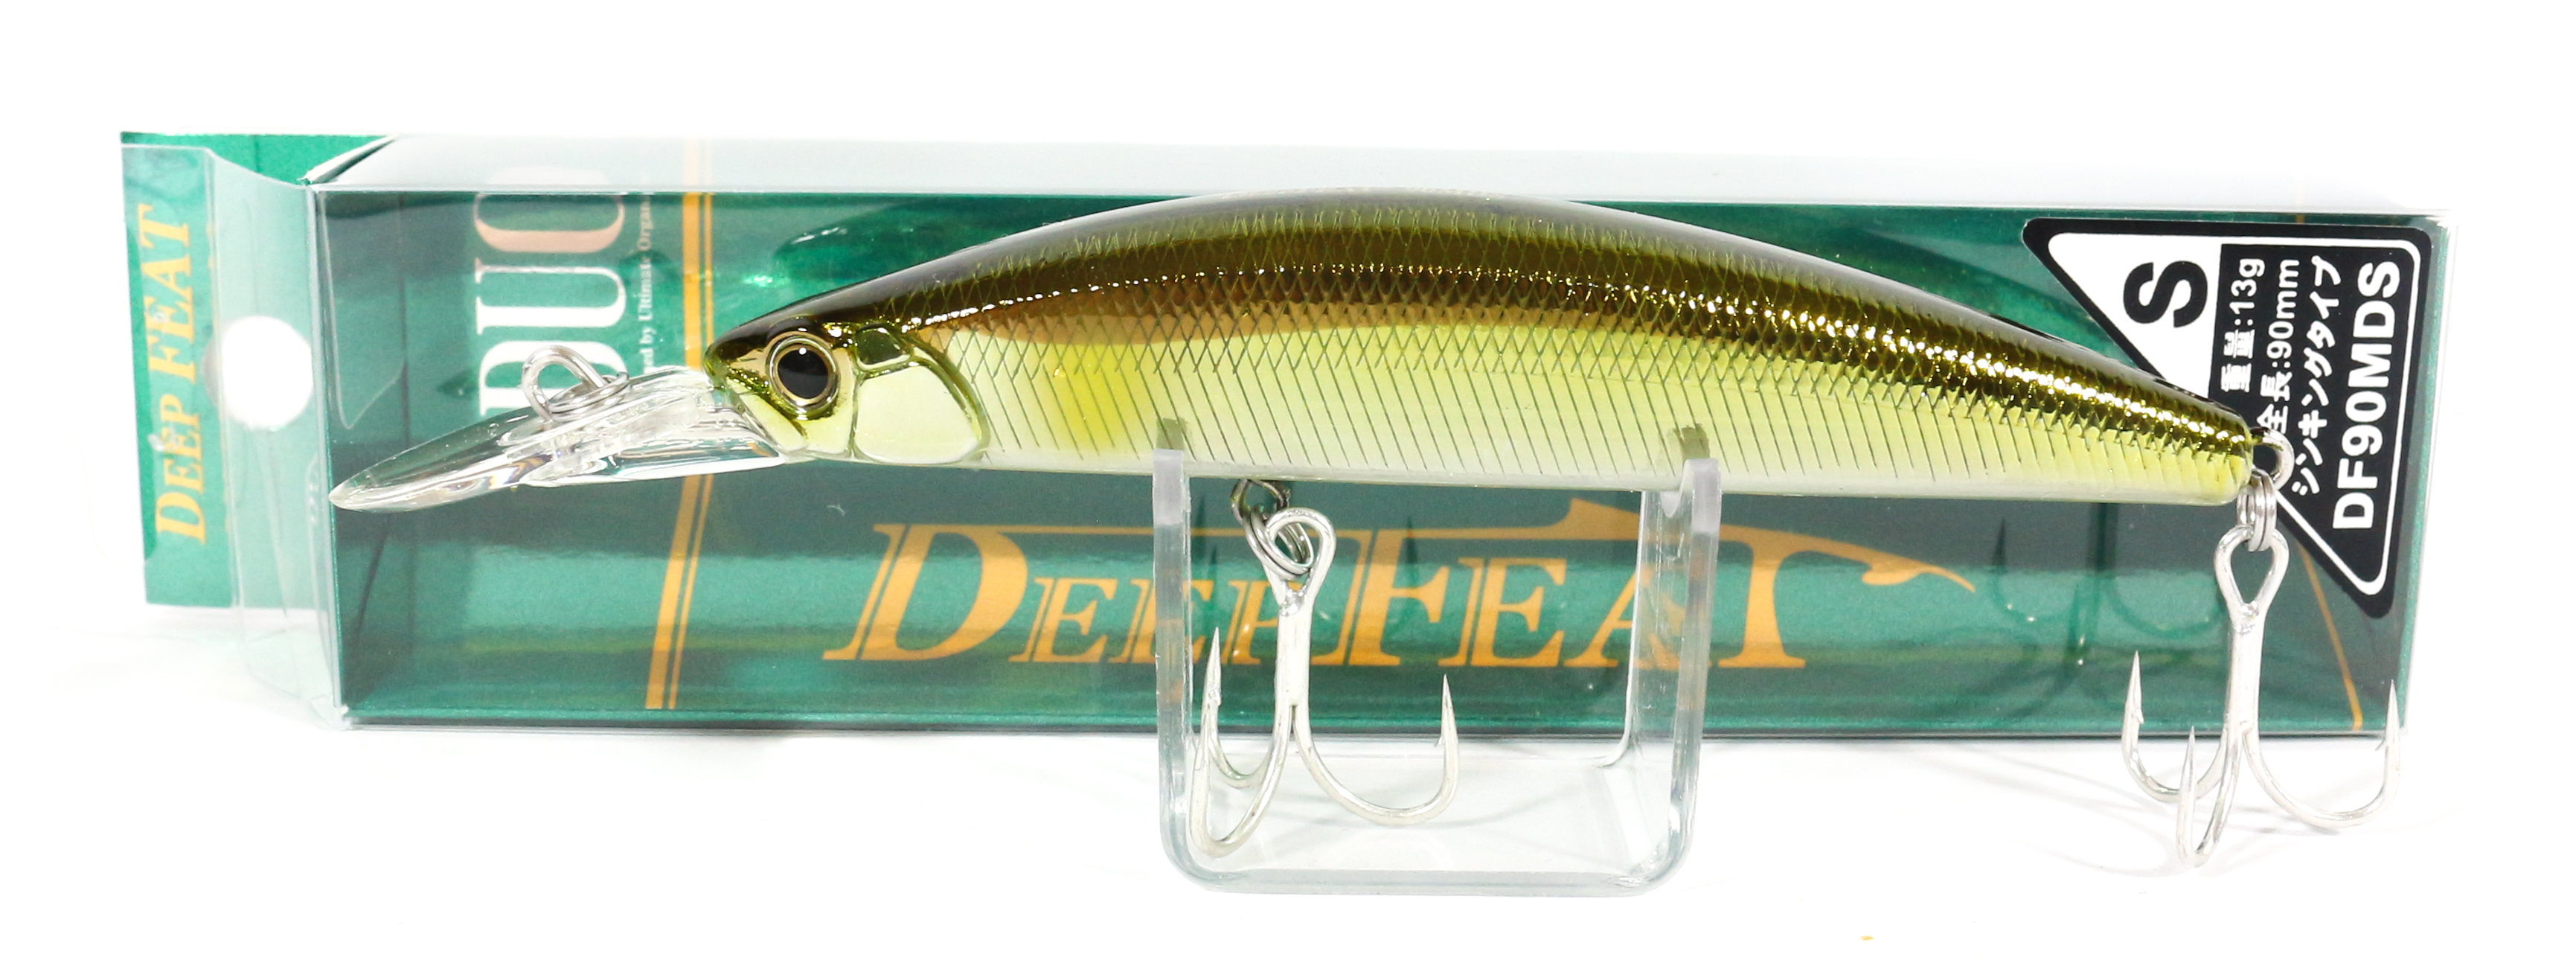 Duo Deep Feat 90 MDS Diving Sinking Lure CRA4110 (9667)